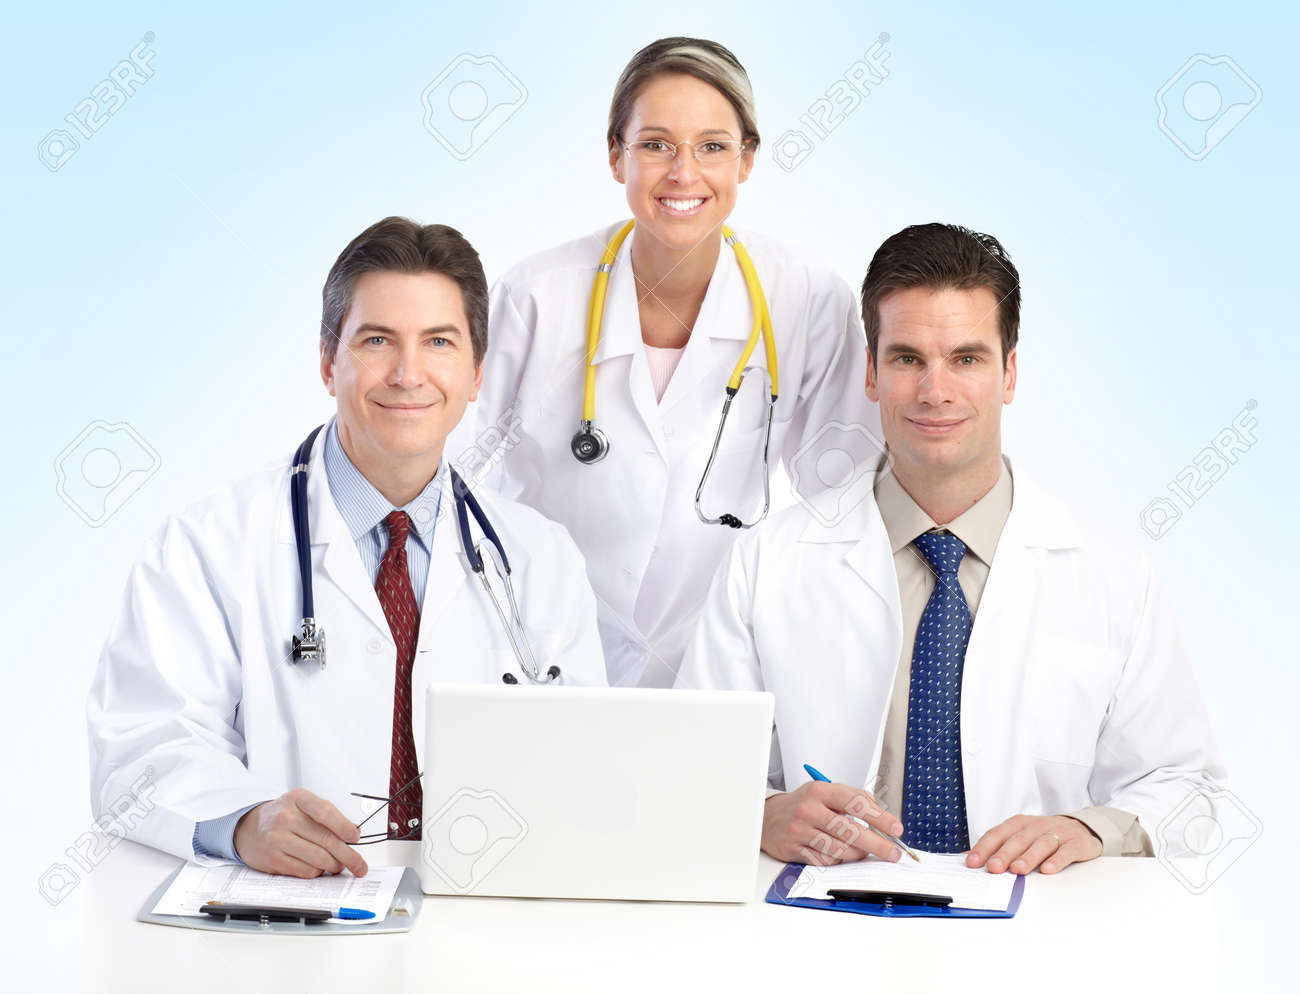 Smiling medical doctors with stethoscopes working with computer. Stock Photo - 7303888